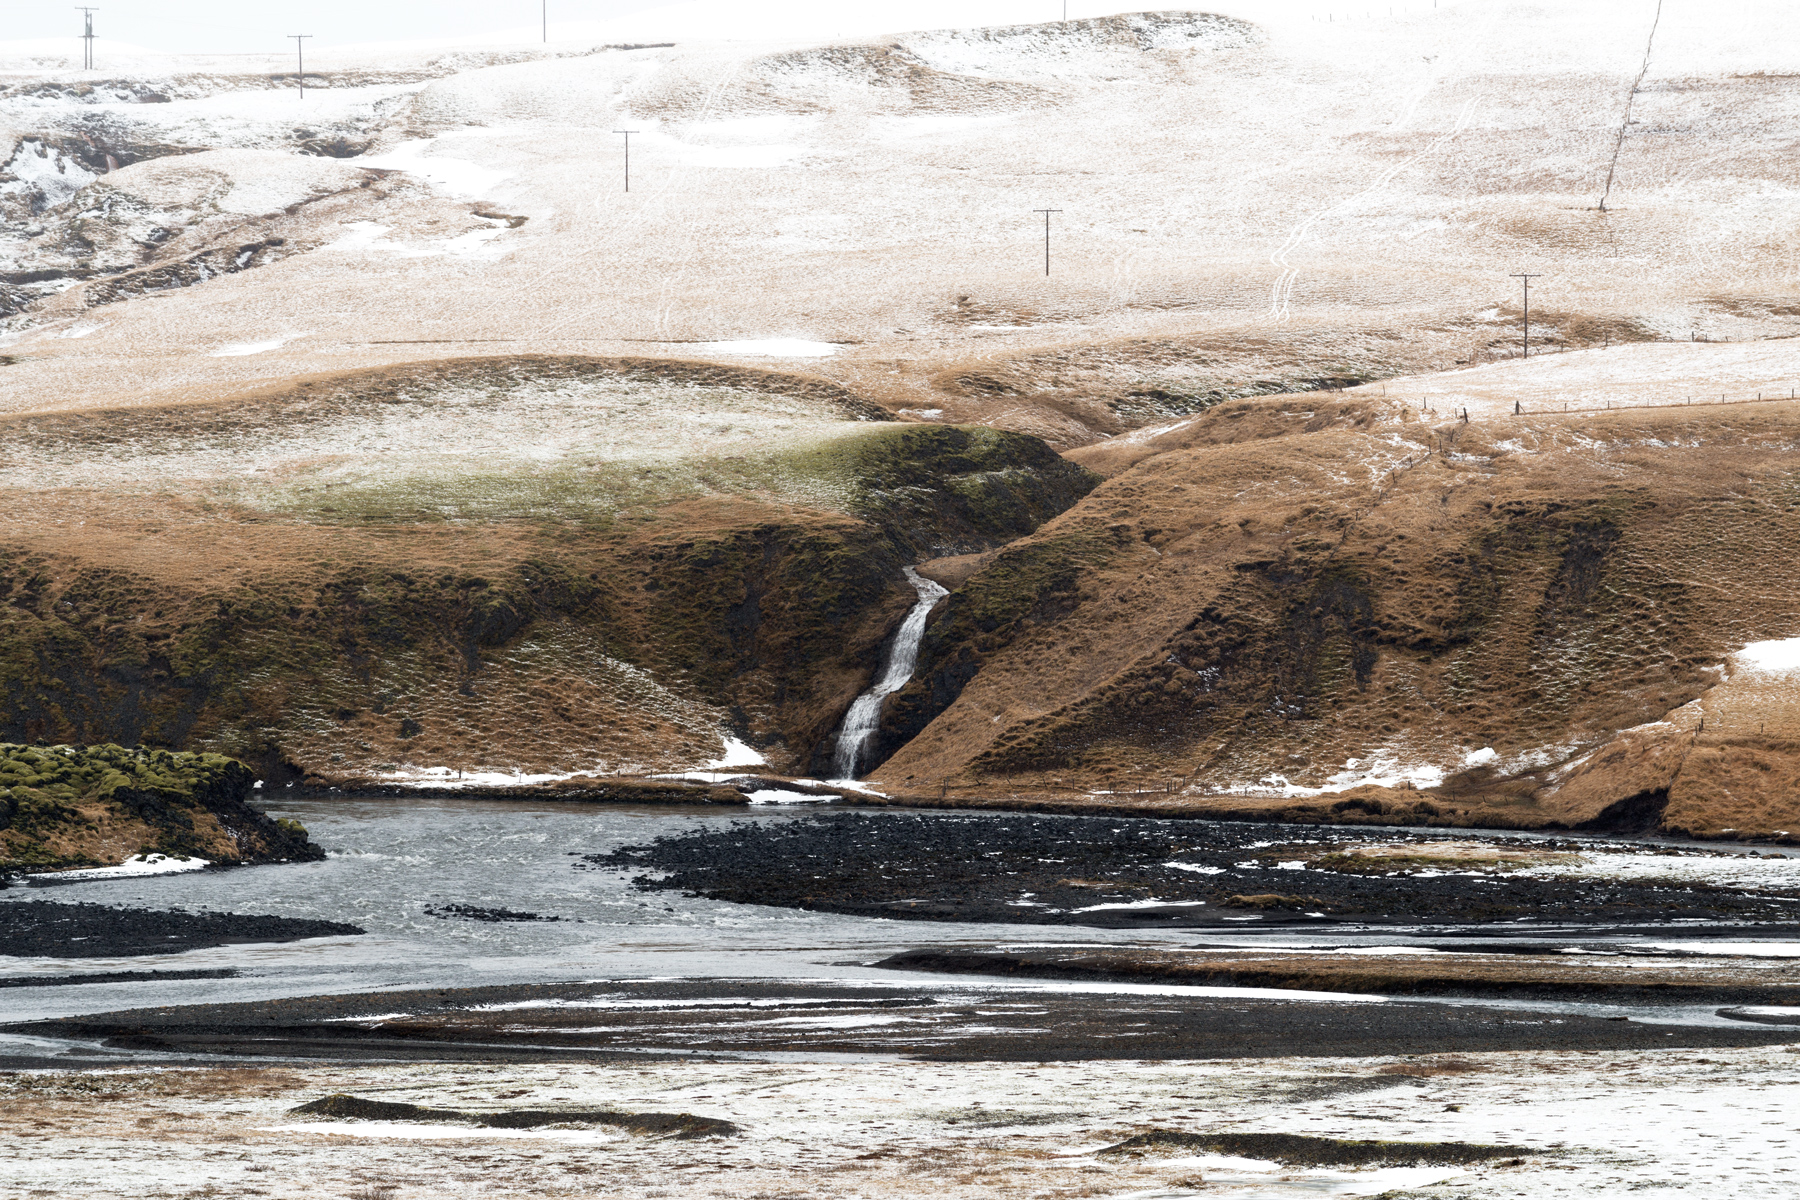 Iceland lanscape with snow and waterfall. Kirsty Owen photography.